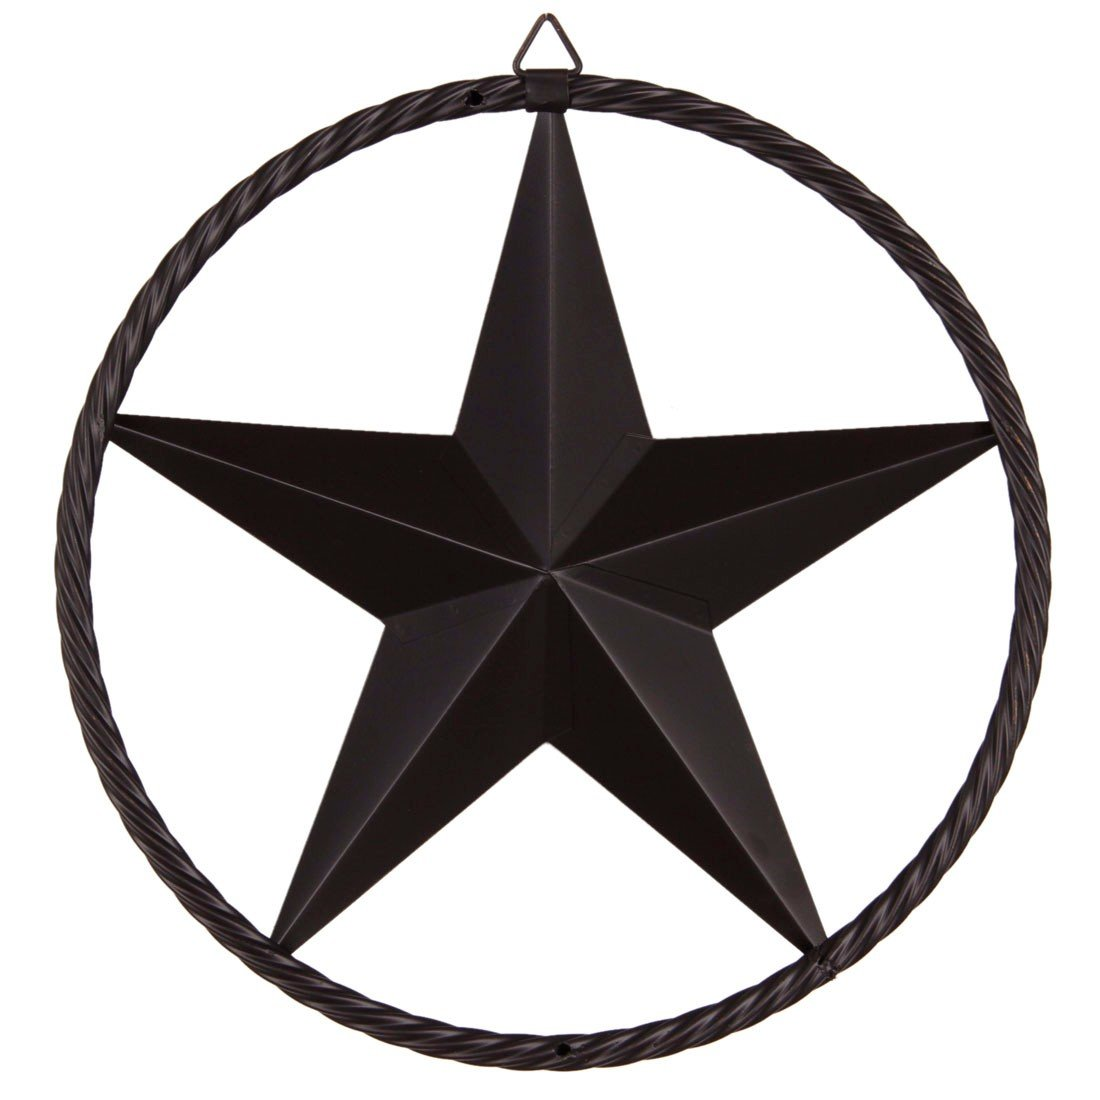 Paixpays 12/17/24\'\'Bronze Metal Circle Ring Star Hanging Home Wall/Door  Decor.